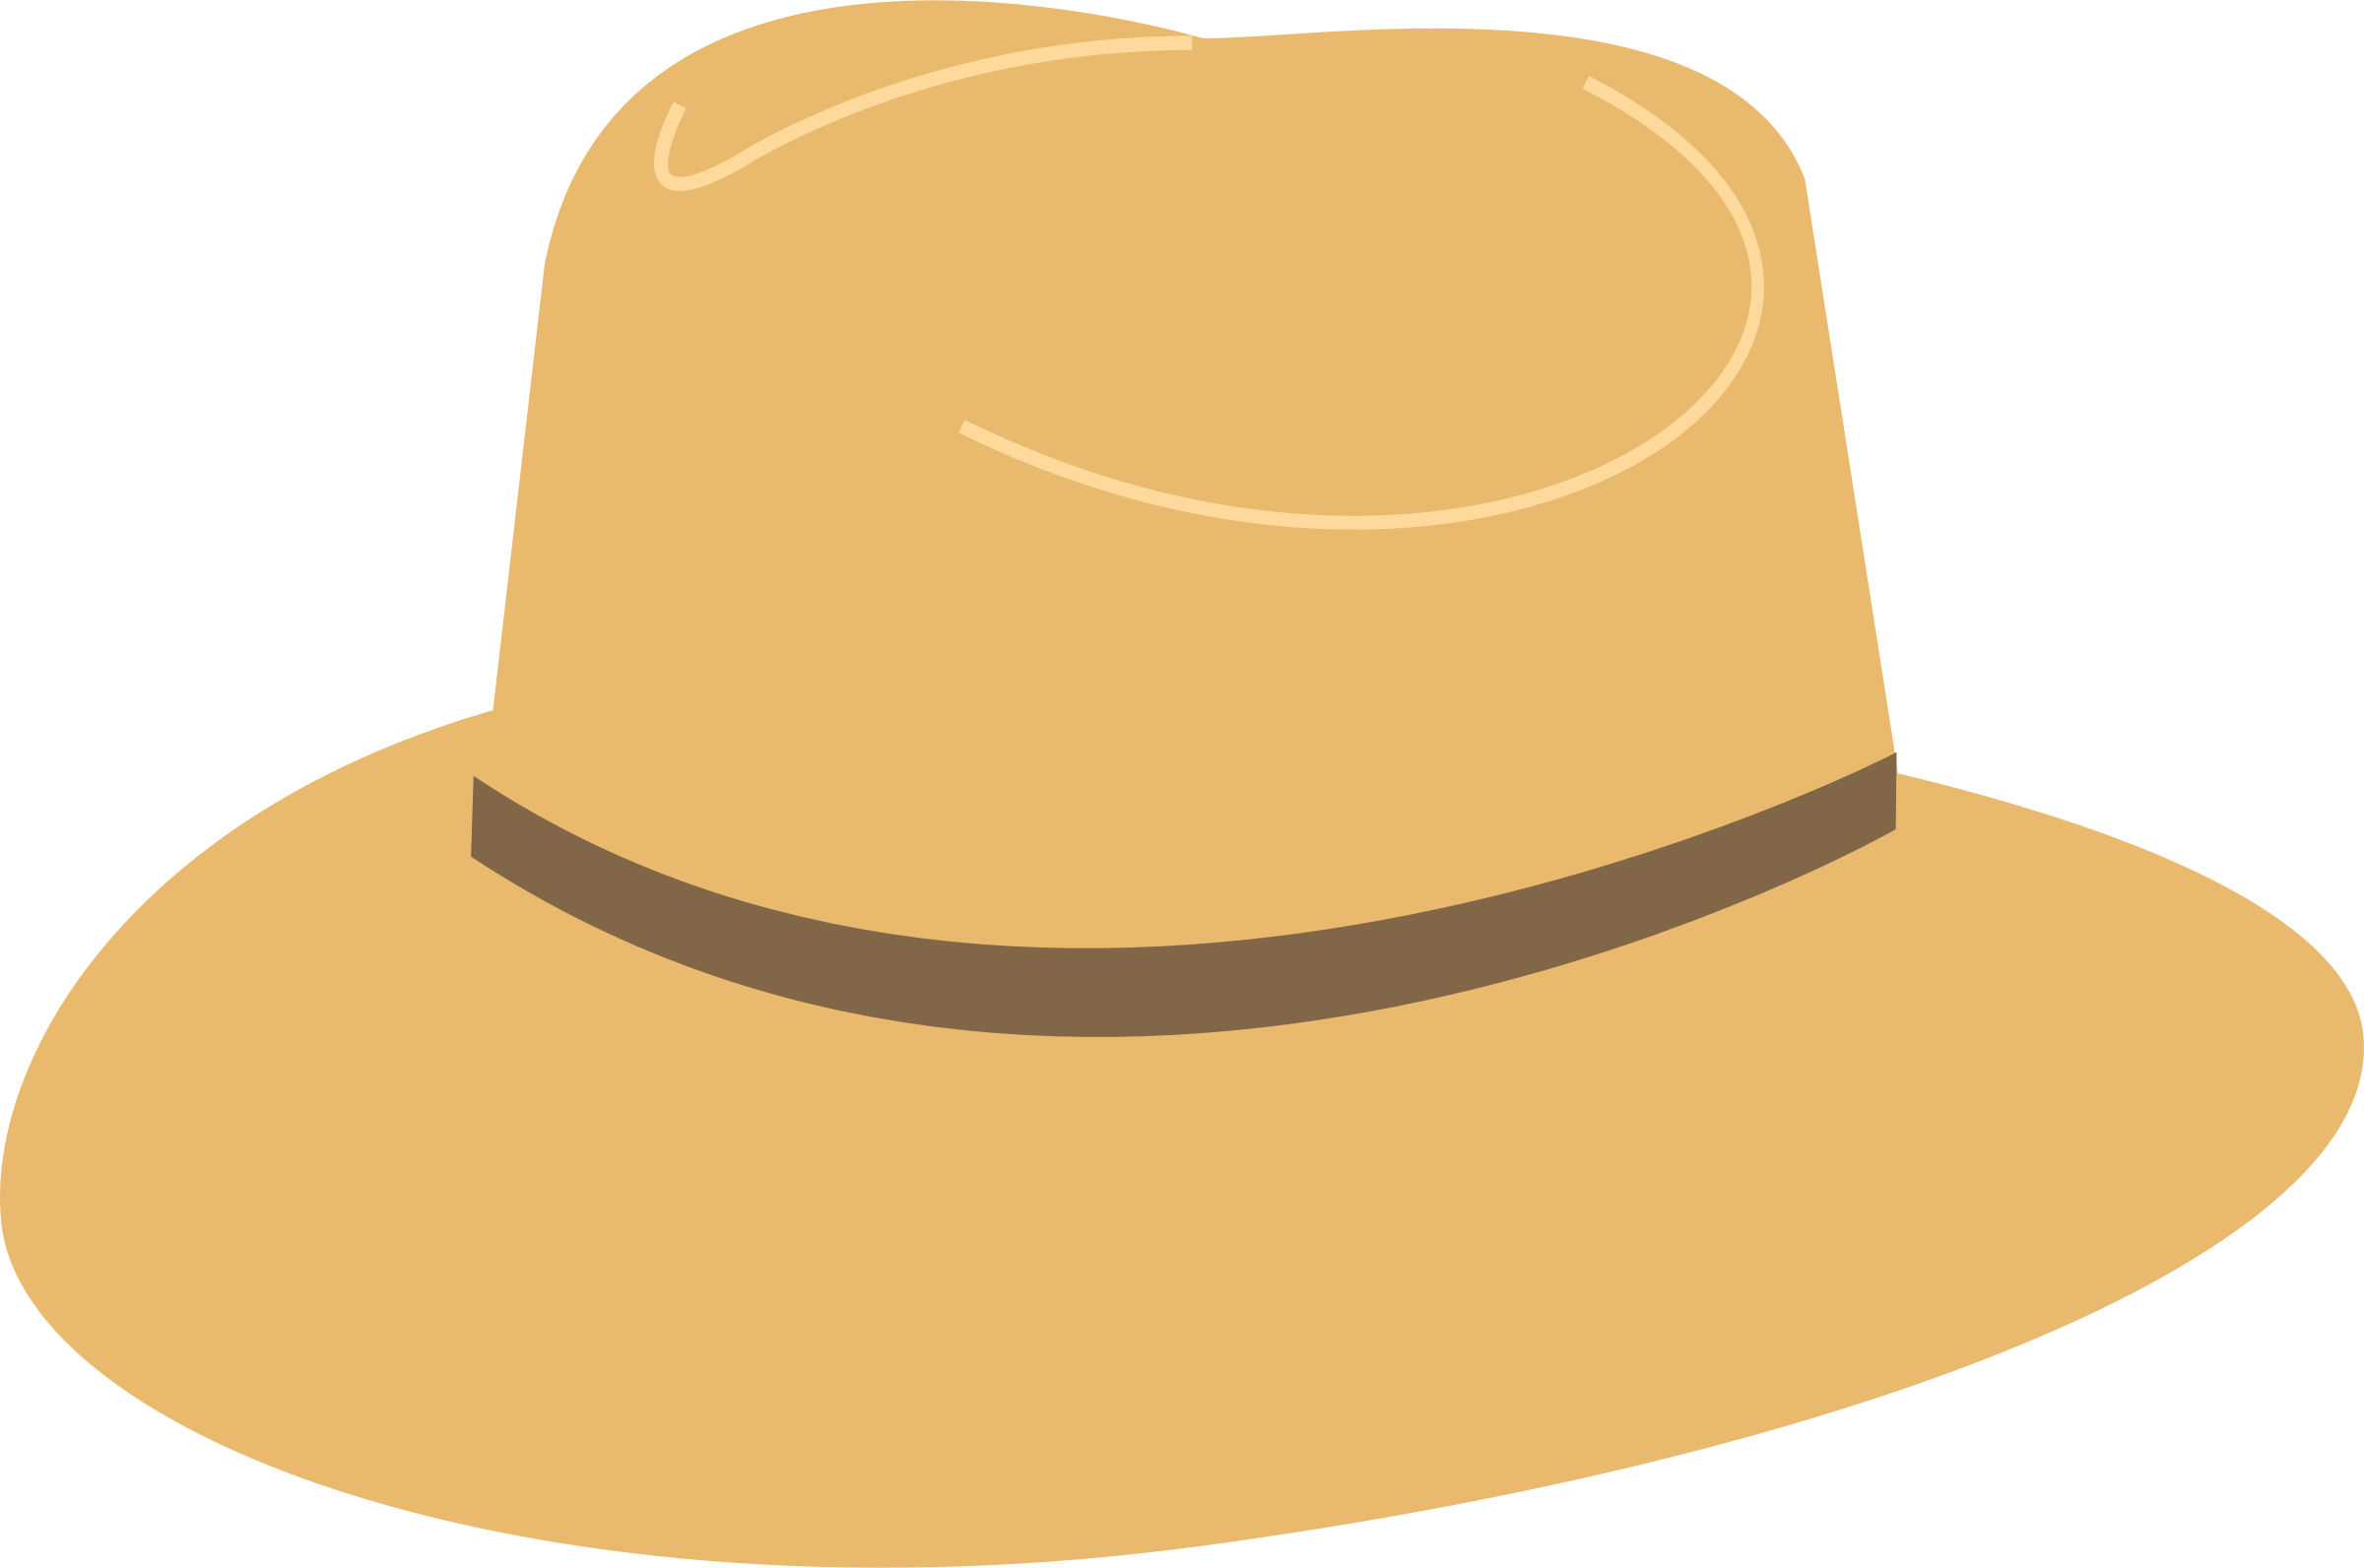 cowboy hat Sun hat graphic black and white stock transparent rr collections png